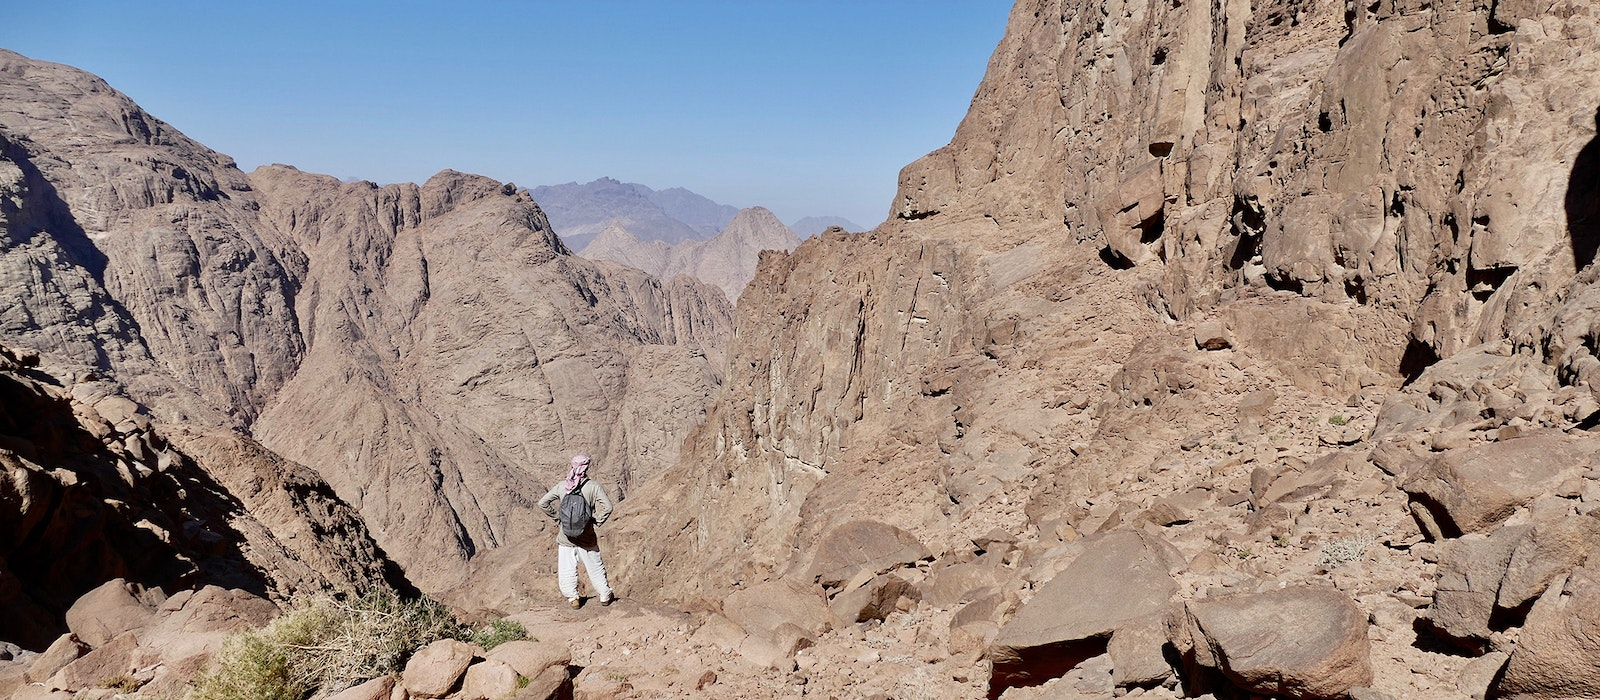 ABedouin guide on Jebel Gattar, a mountain in Egypt's Red Sea range